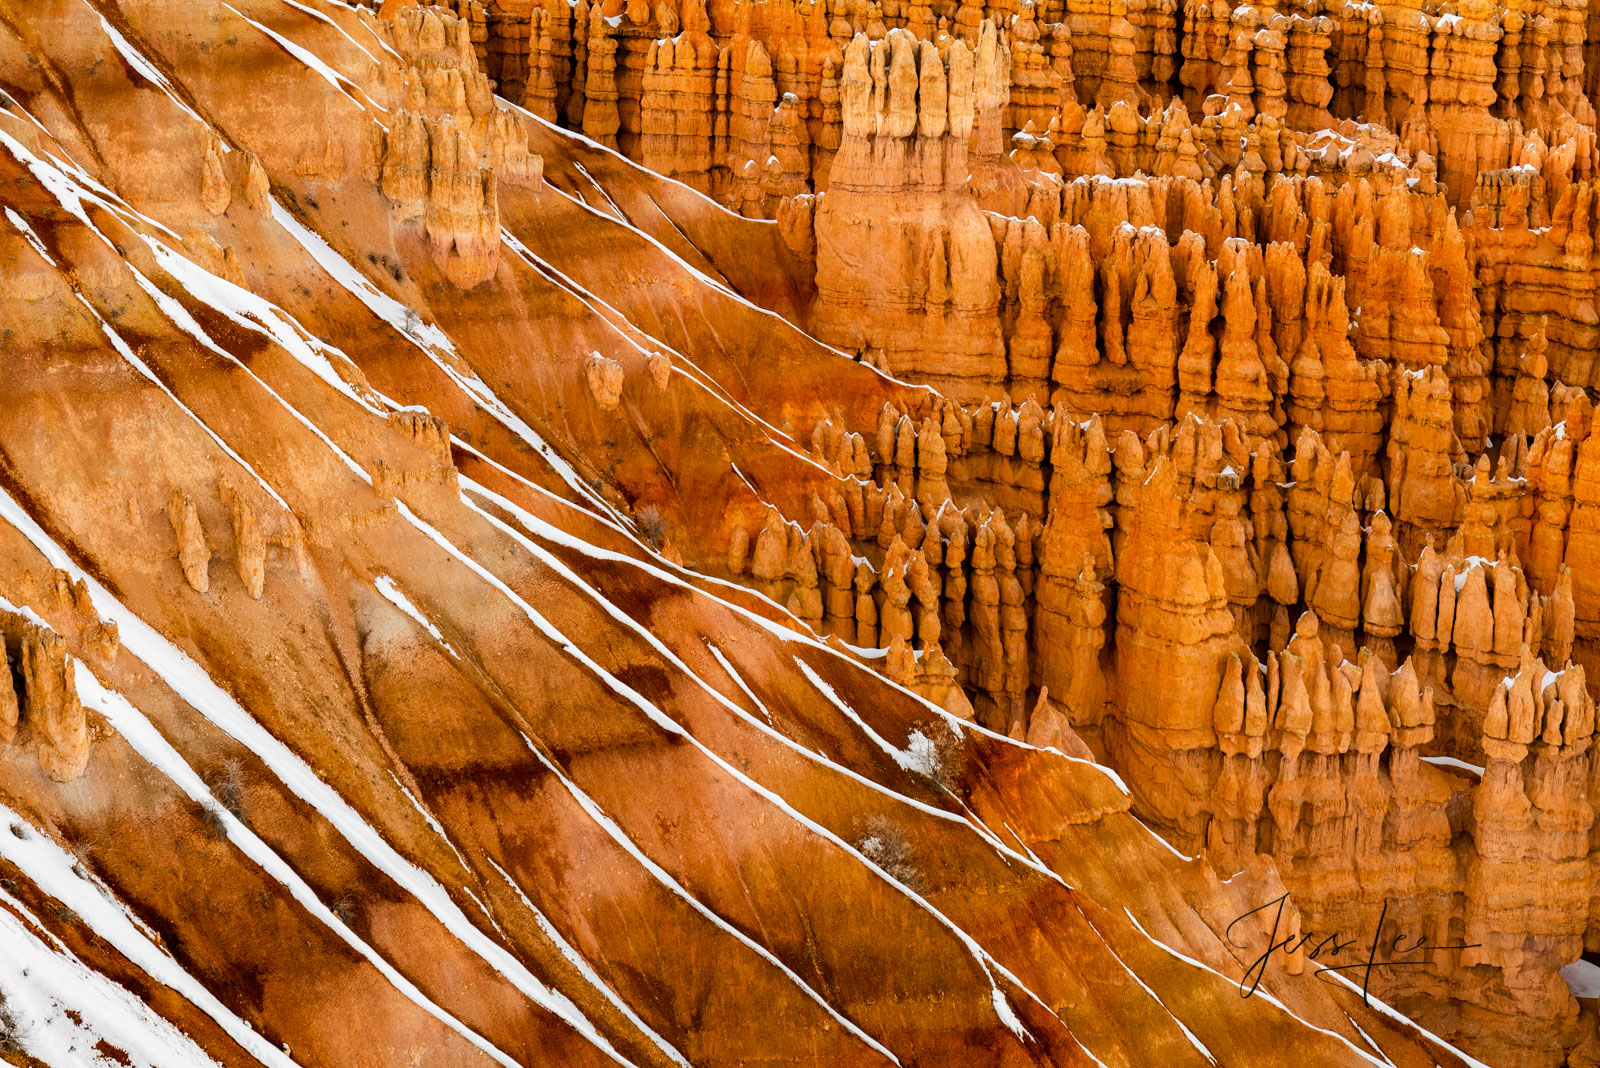 Limited Edition of 50 Exclusive high-resolution Museum Quality Fine Art Prints of Red Rocks Zebra Bryce Canyon. Photos Copyright...